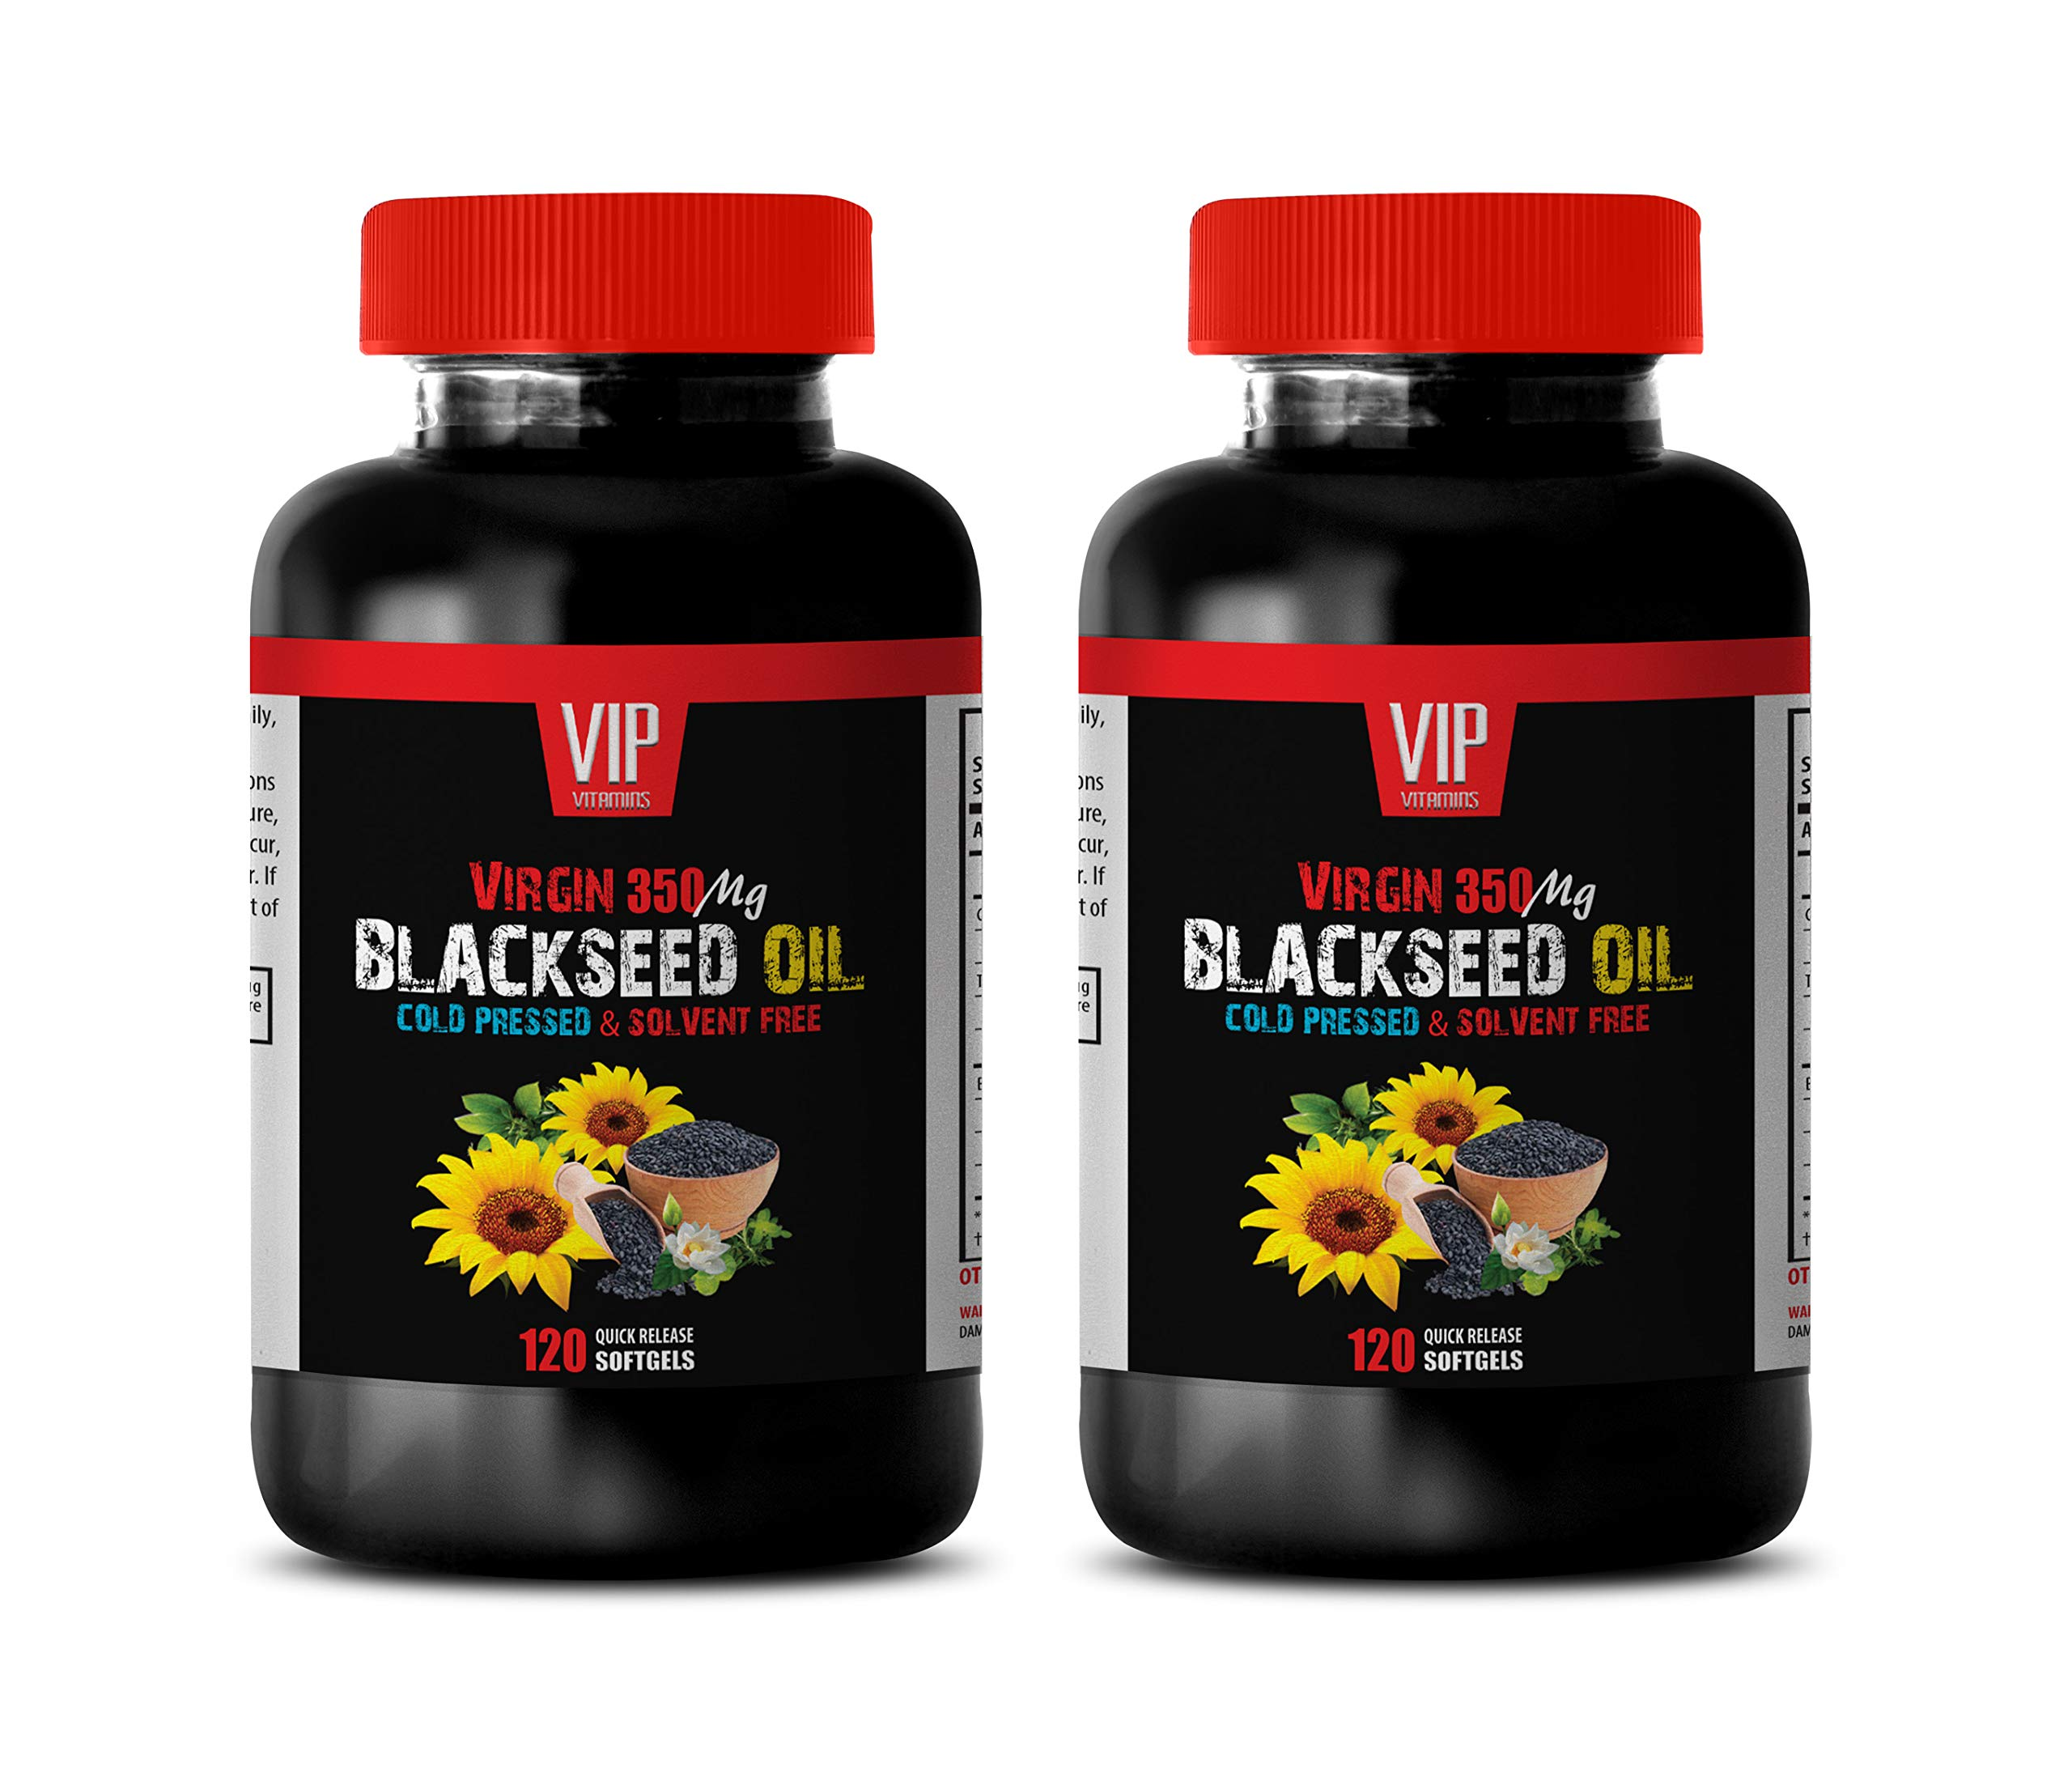 antioxidant Supplements for Men - Black Seed Oil Virgin 350 MG - Black Seed Oil Skin Care - 2 Bottles 240 Softgels by VIP VITAMINS